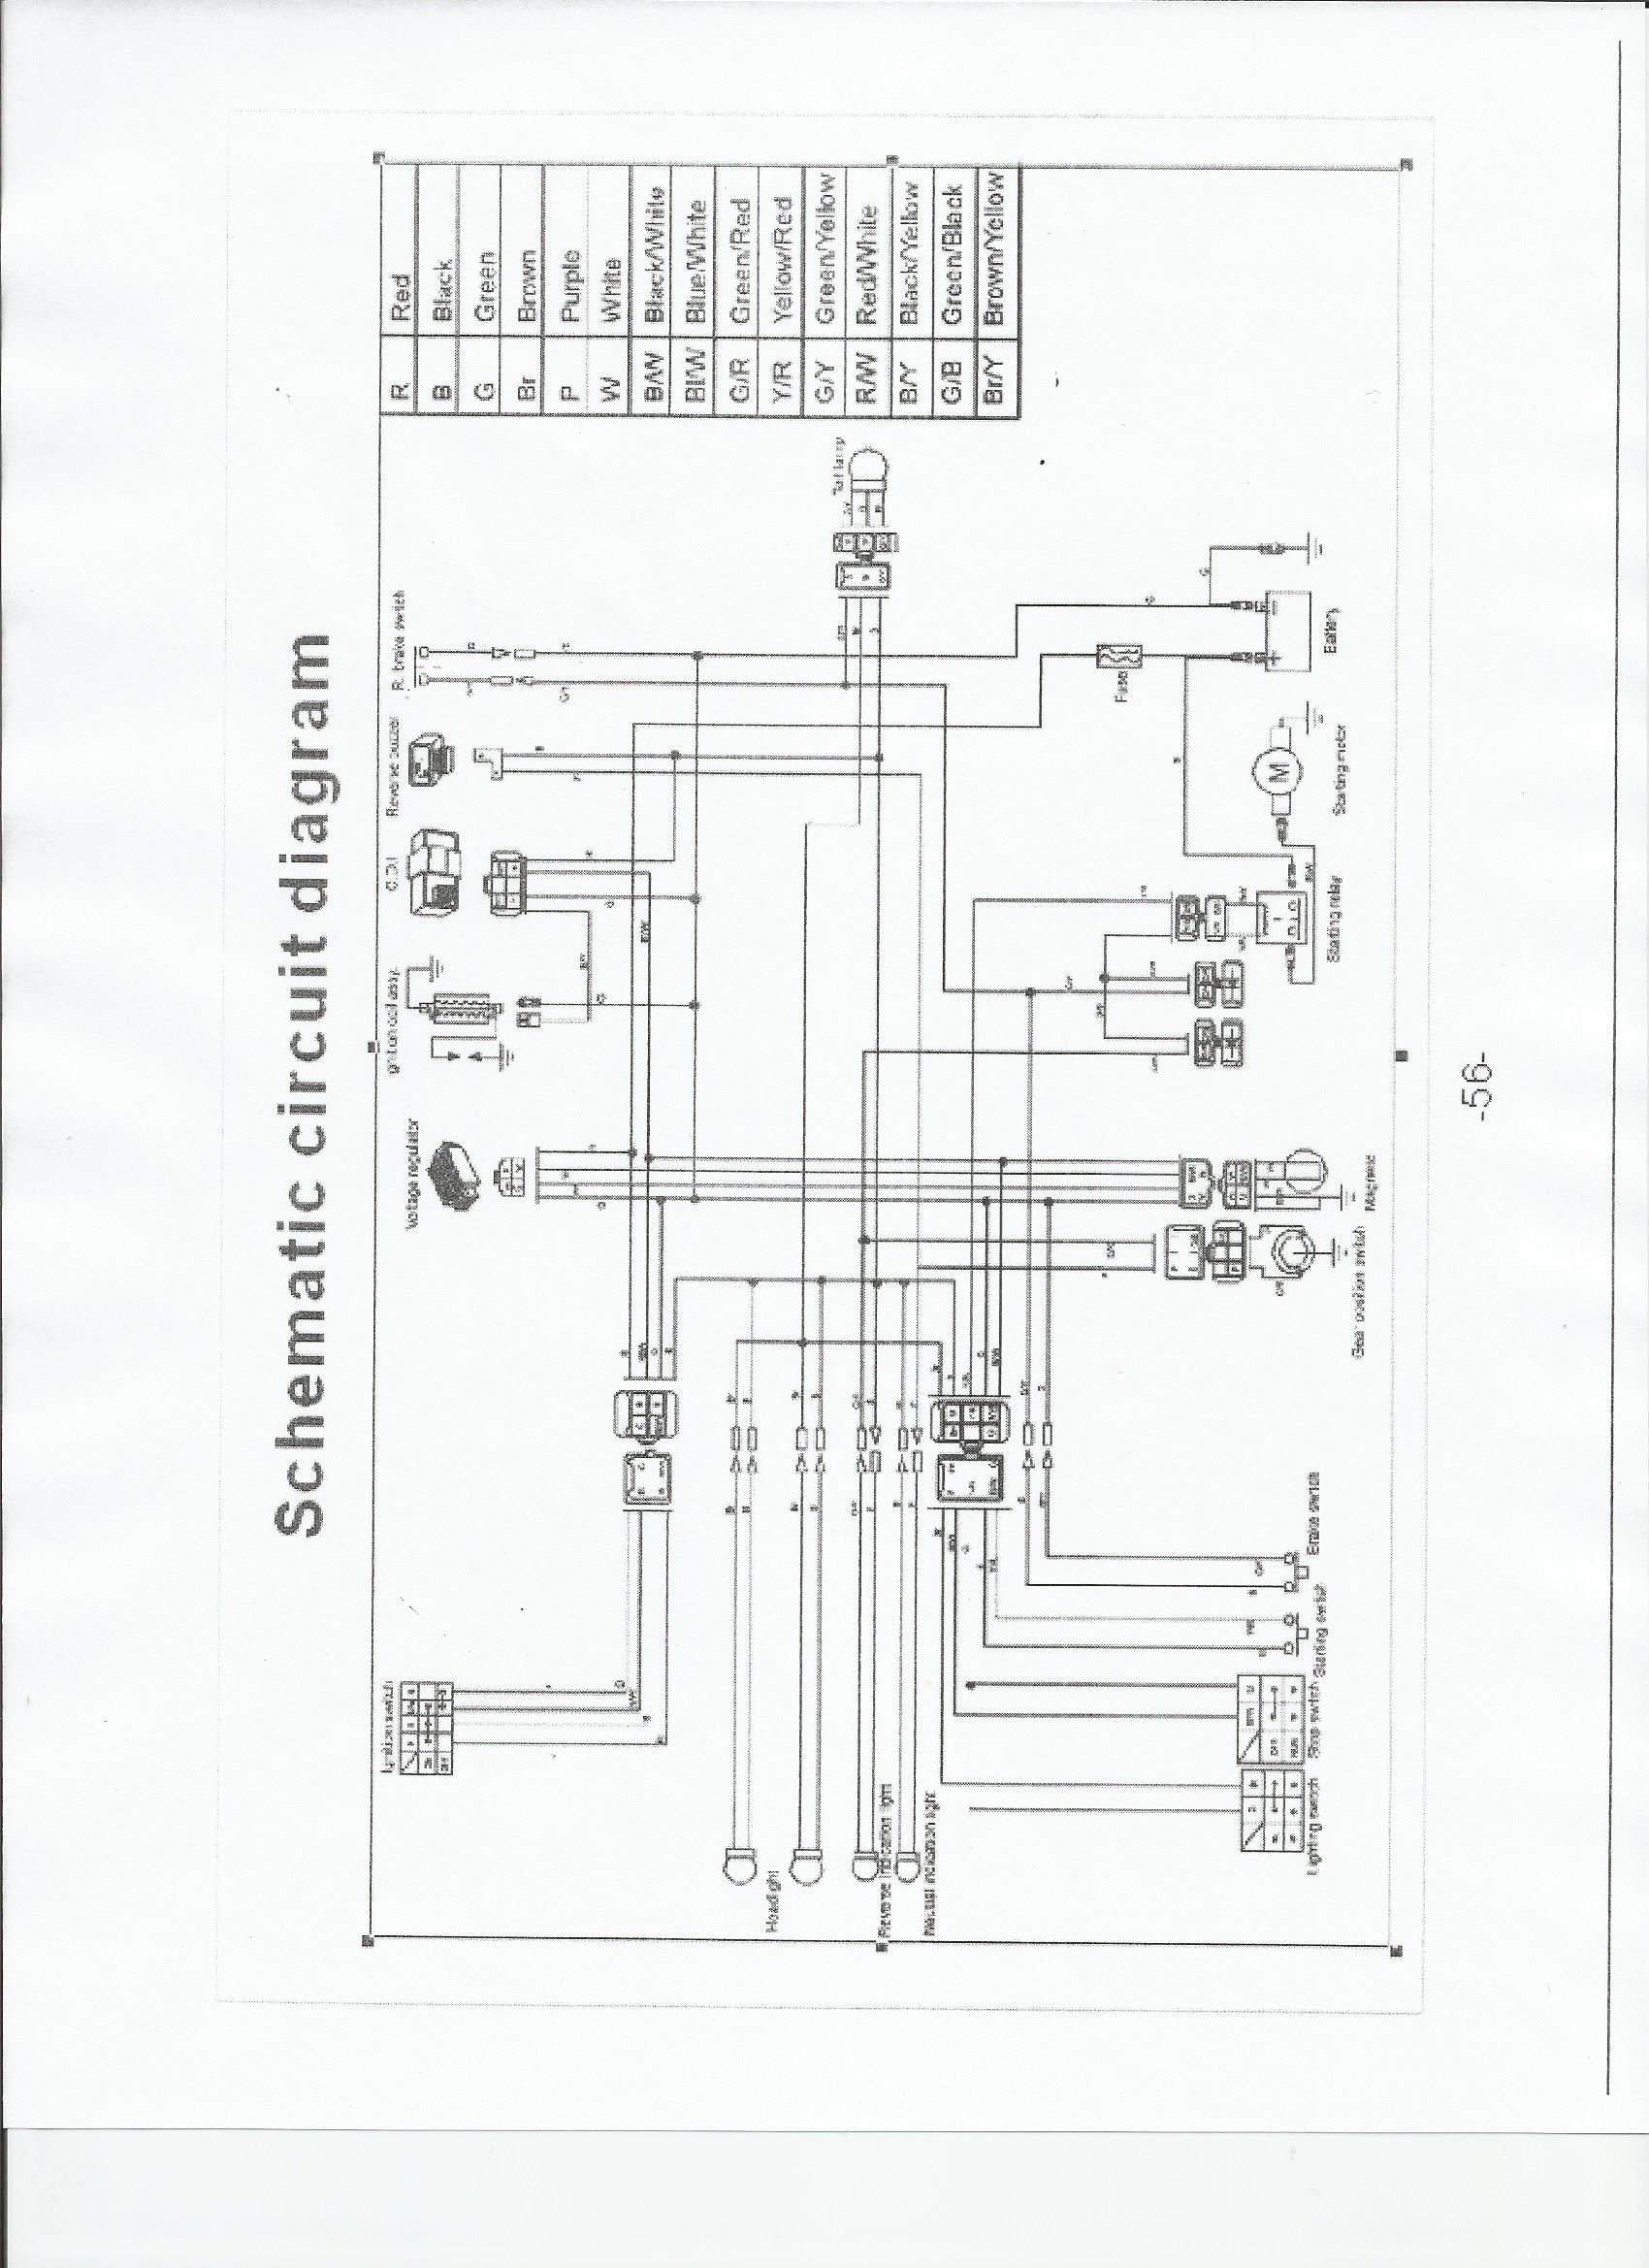 tao tao wiring schematic taotao mini and youth atv wiring schematic familygokarts support loncin 110 atv wiring diagram at highcare.asia